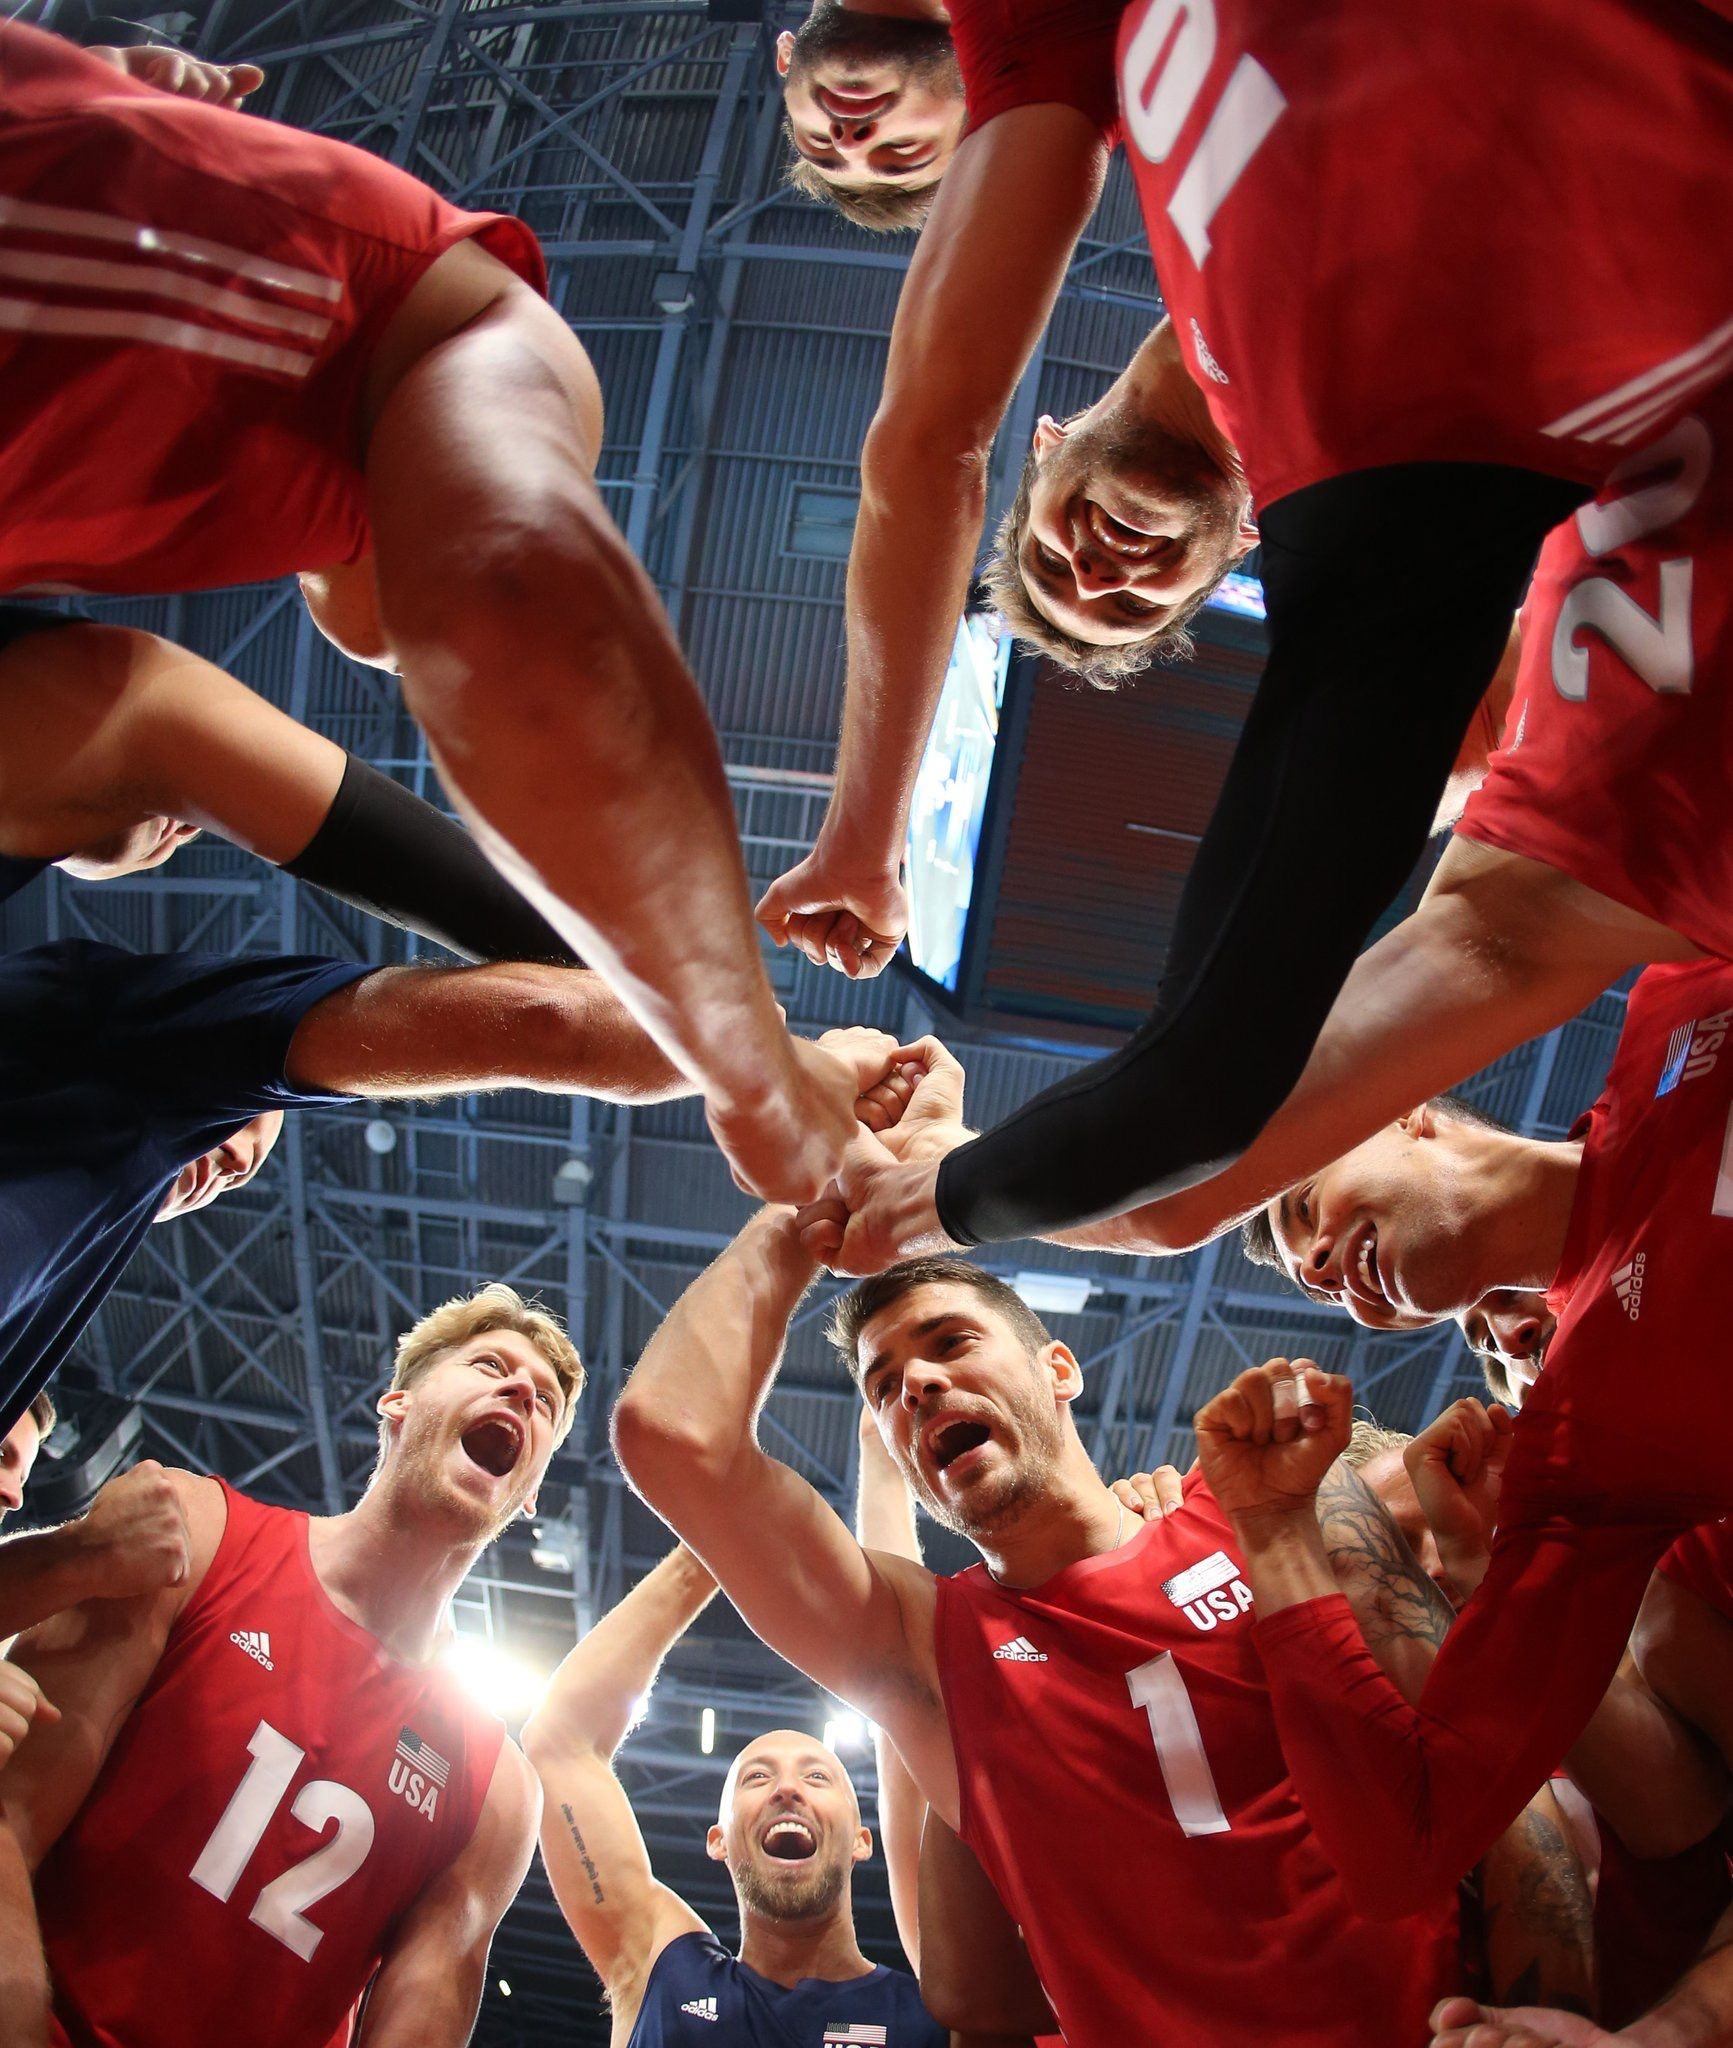 Usa Volleyball Usa Volleyball Usa Volleyball Team Volleyball